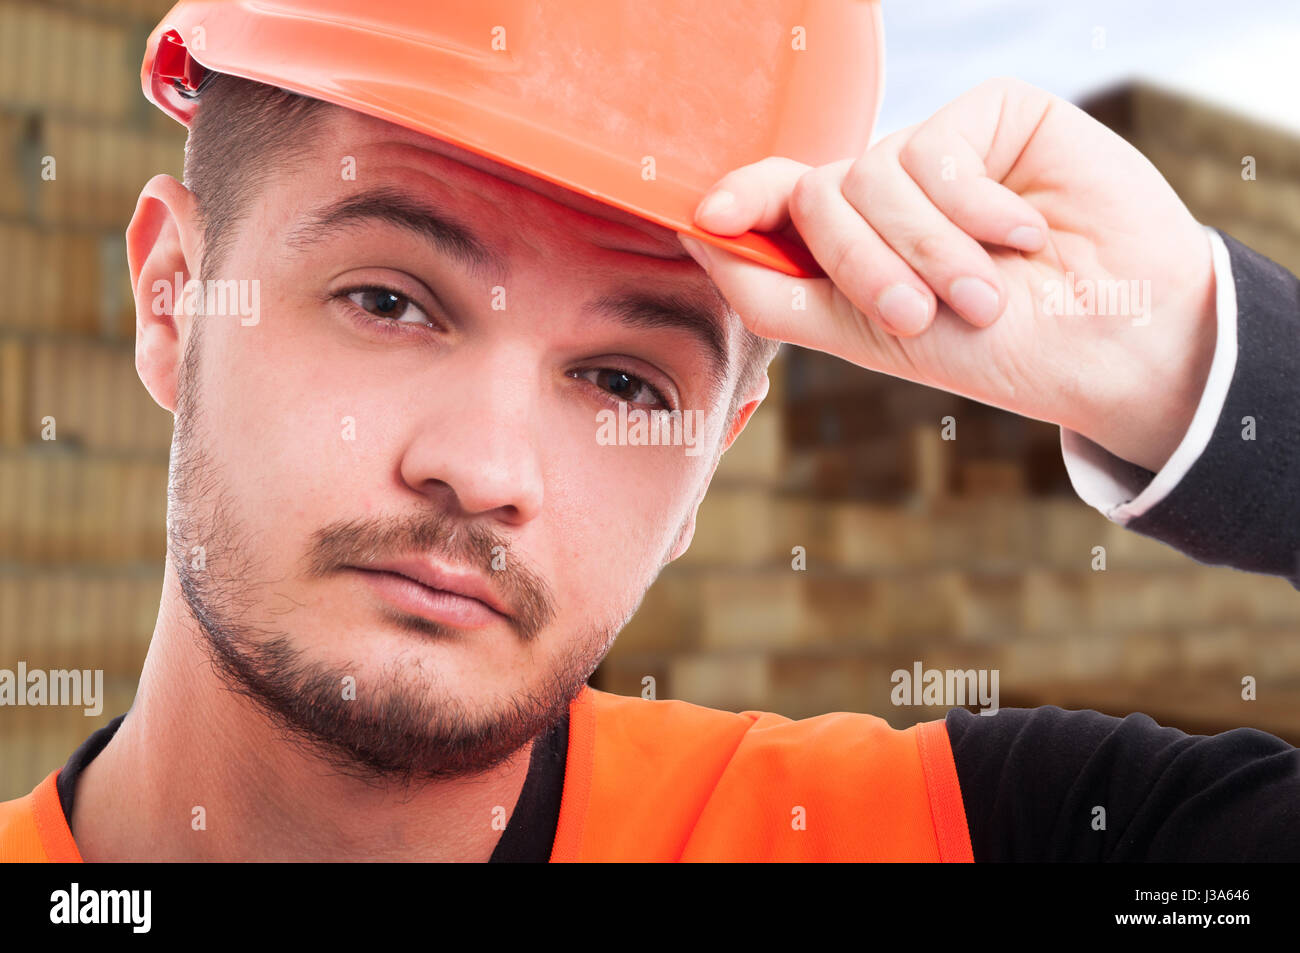 Close-up portrait of young engineer with protection helmet posing on construction site - Stock Image